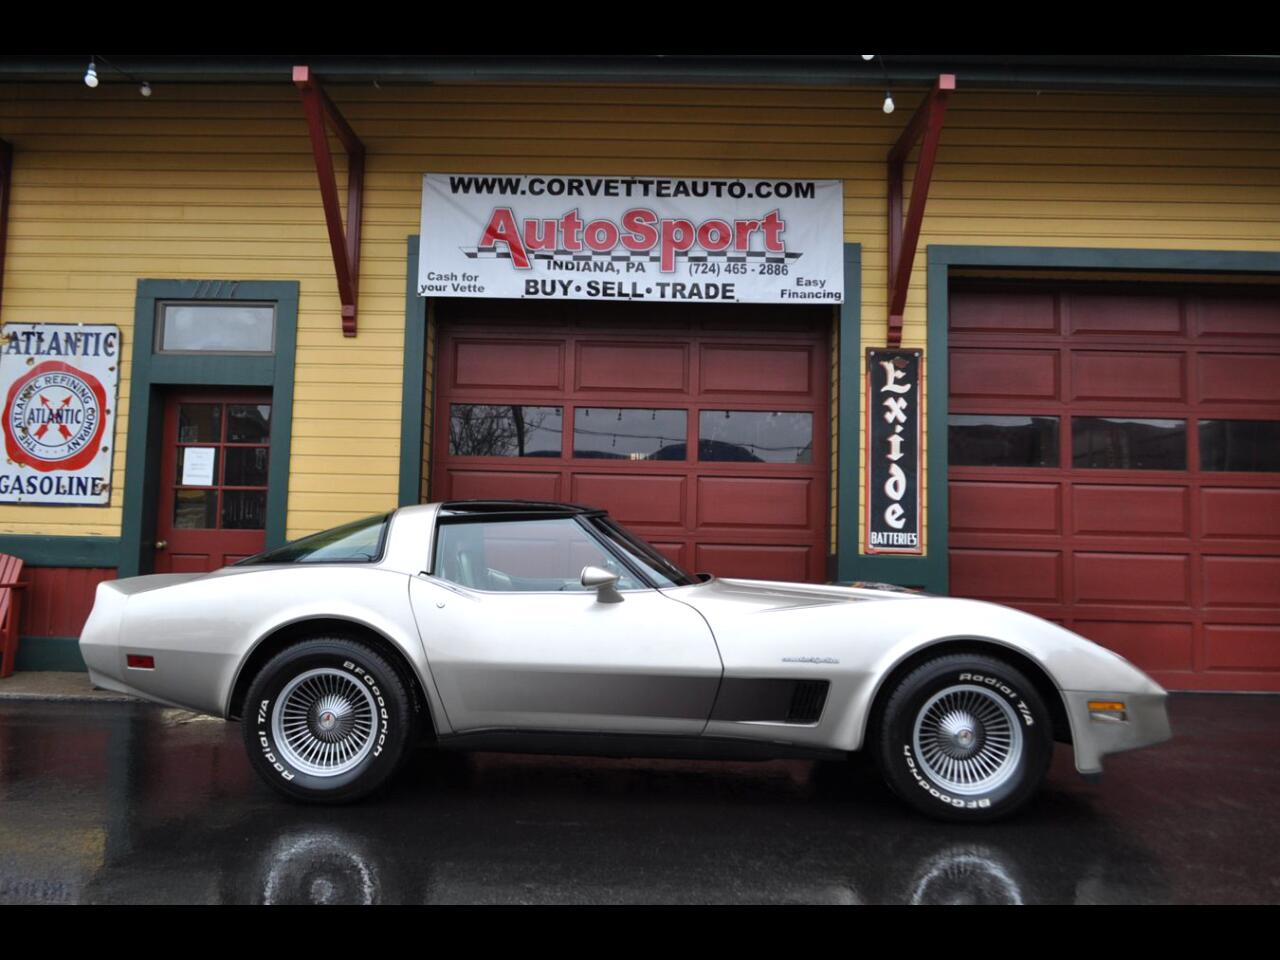 1982 Chevrolet Corvette 1982 Collector Edition 5023 Org Miles!!